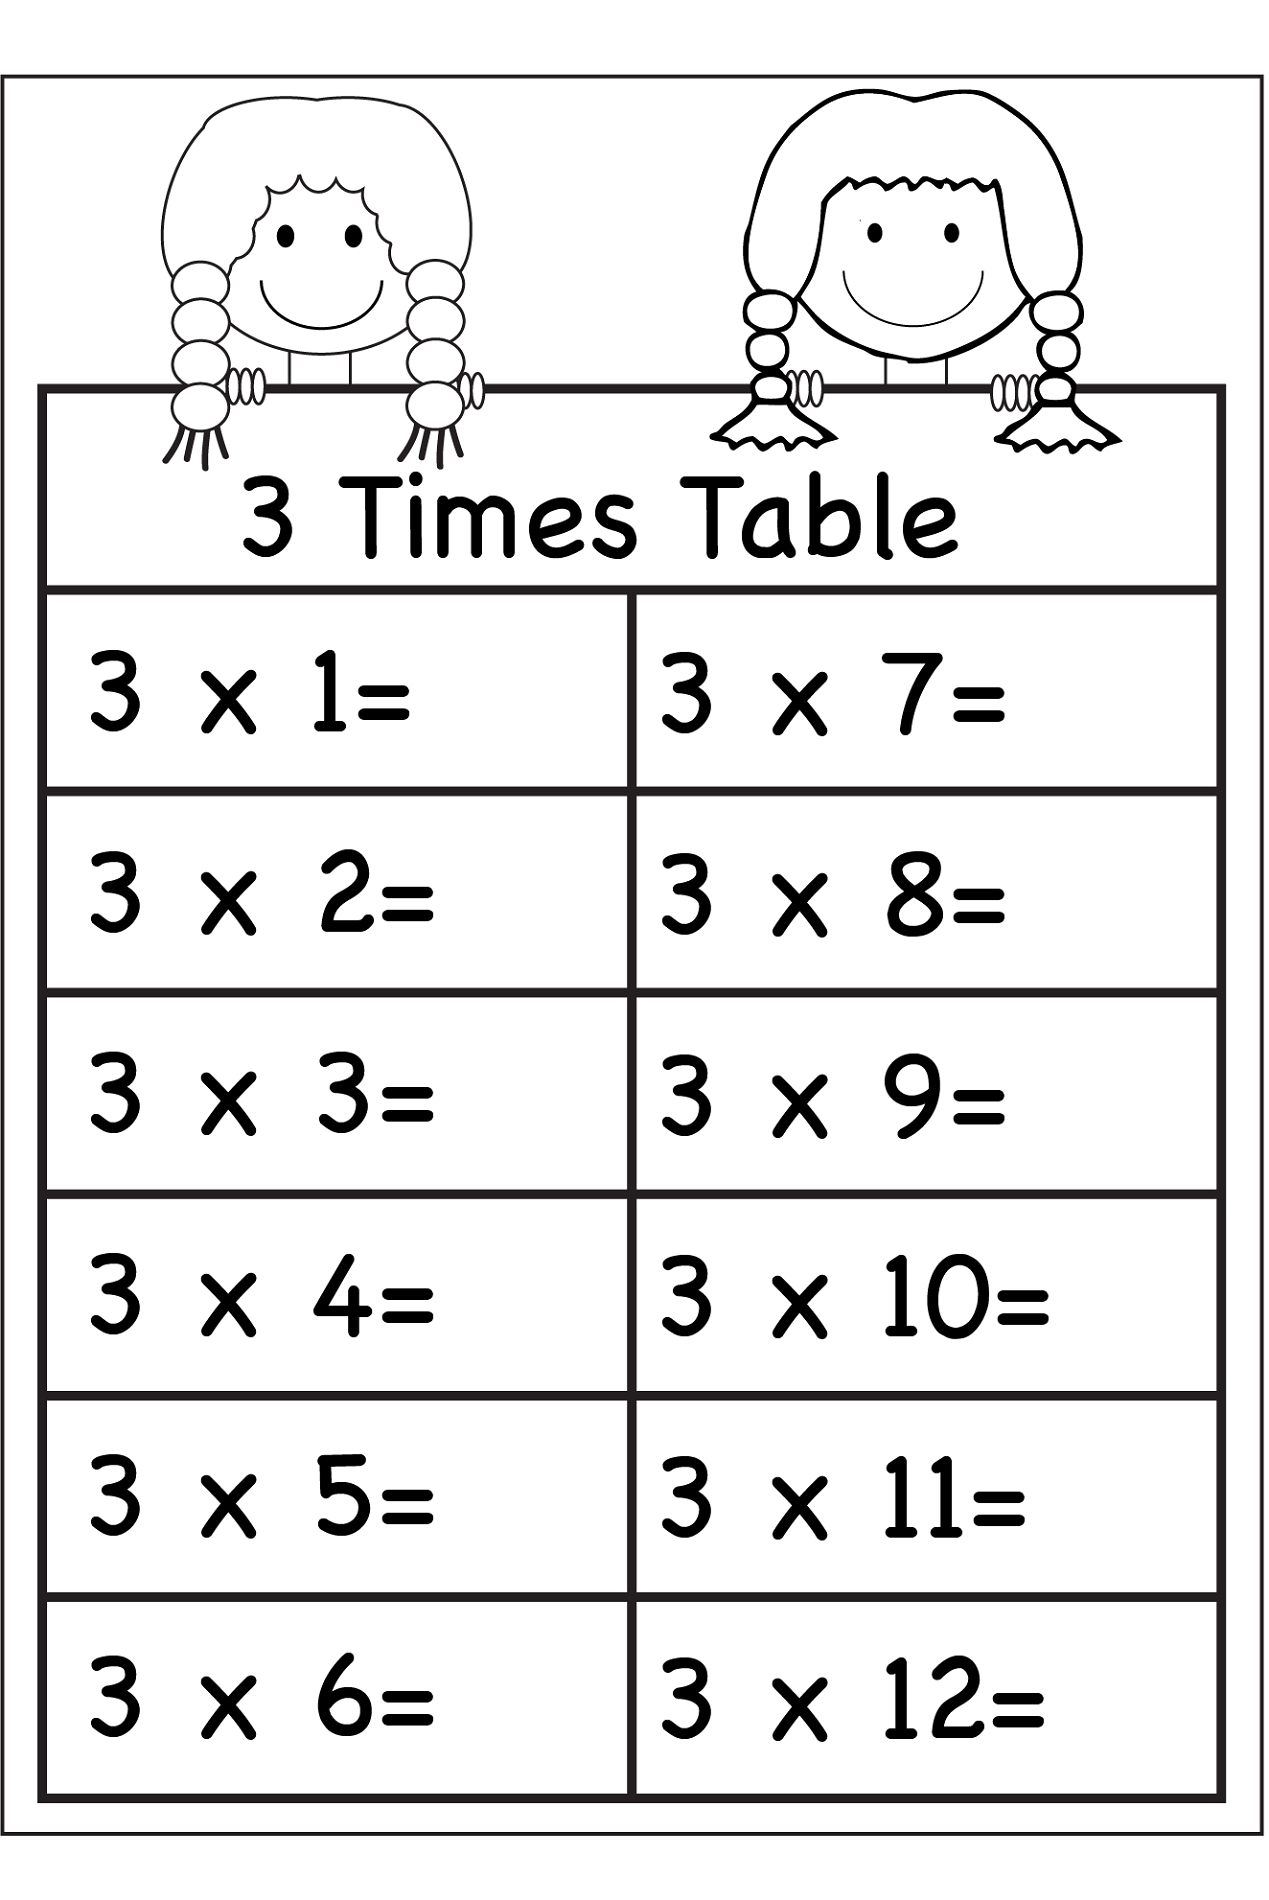 3 Times Table Worksheets